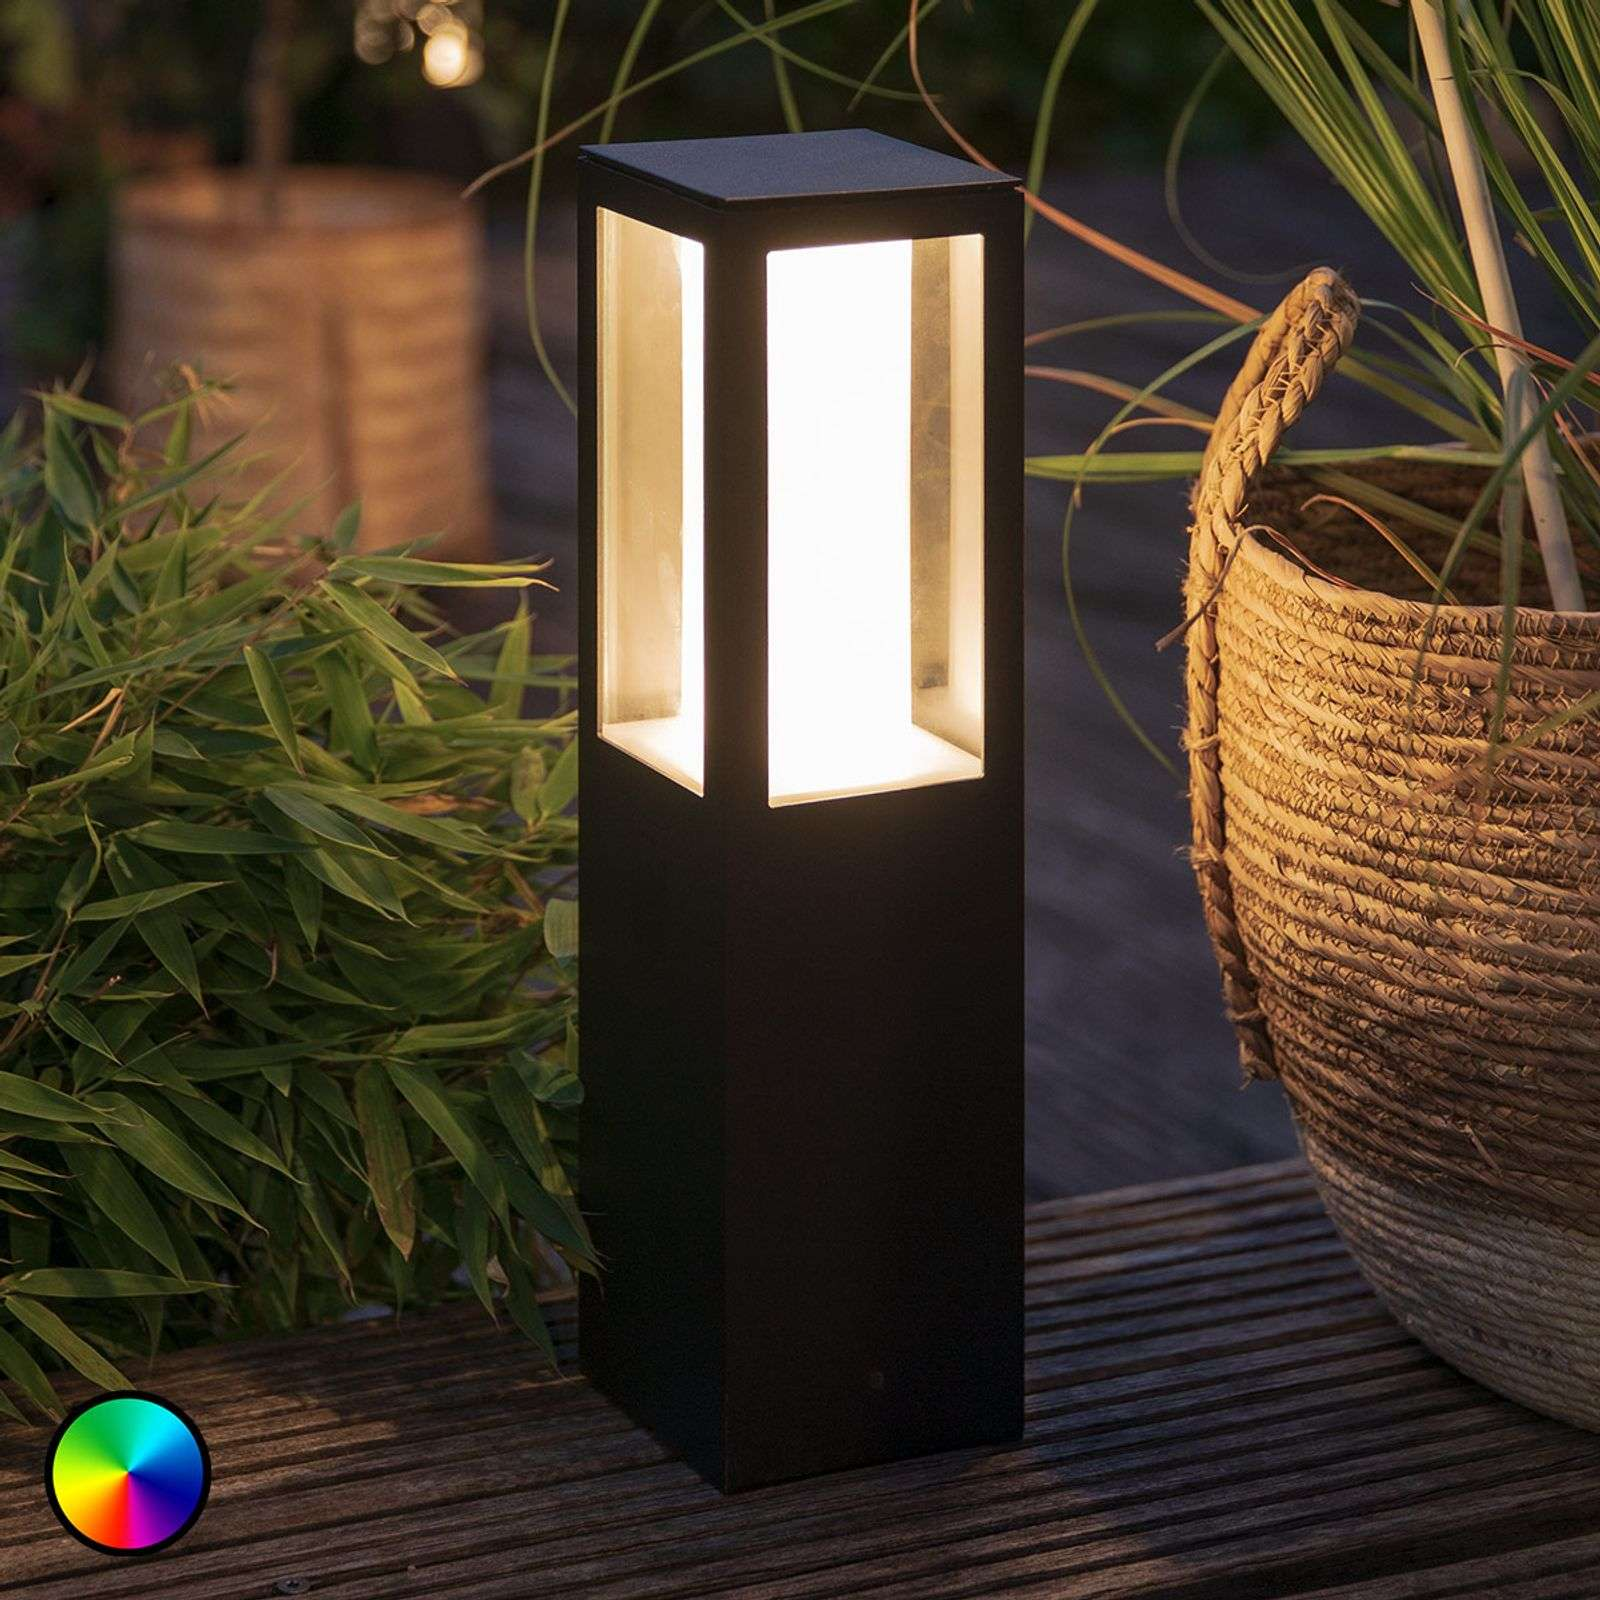 Philips Hue Impress sobremuro, set básico